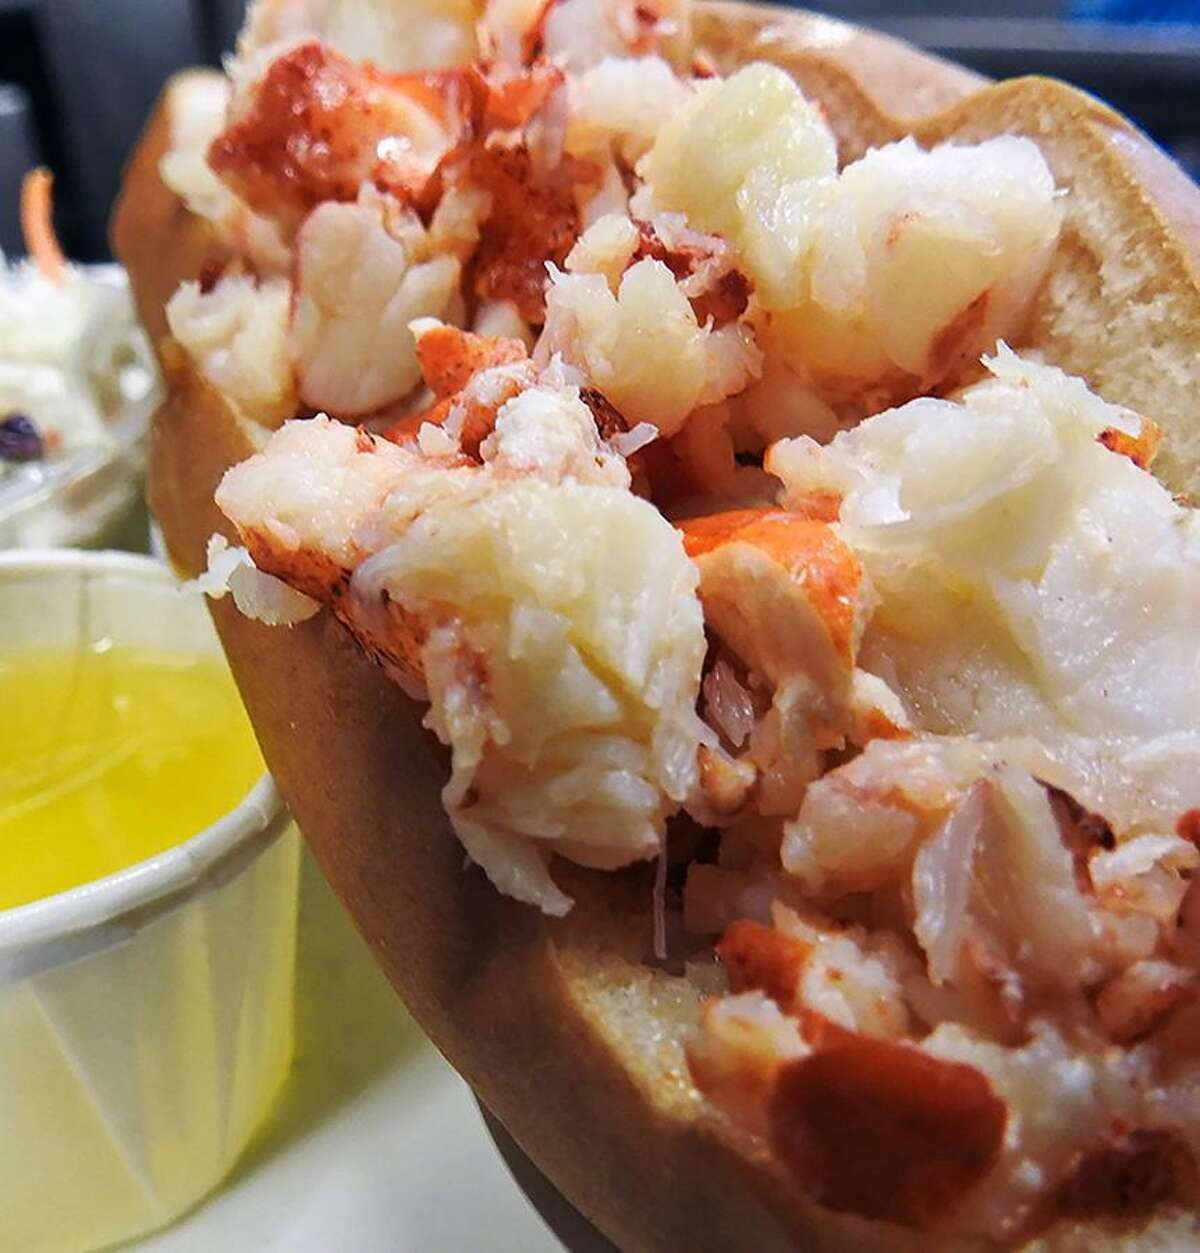 How about all-you-can-eat lobster?